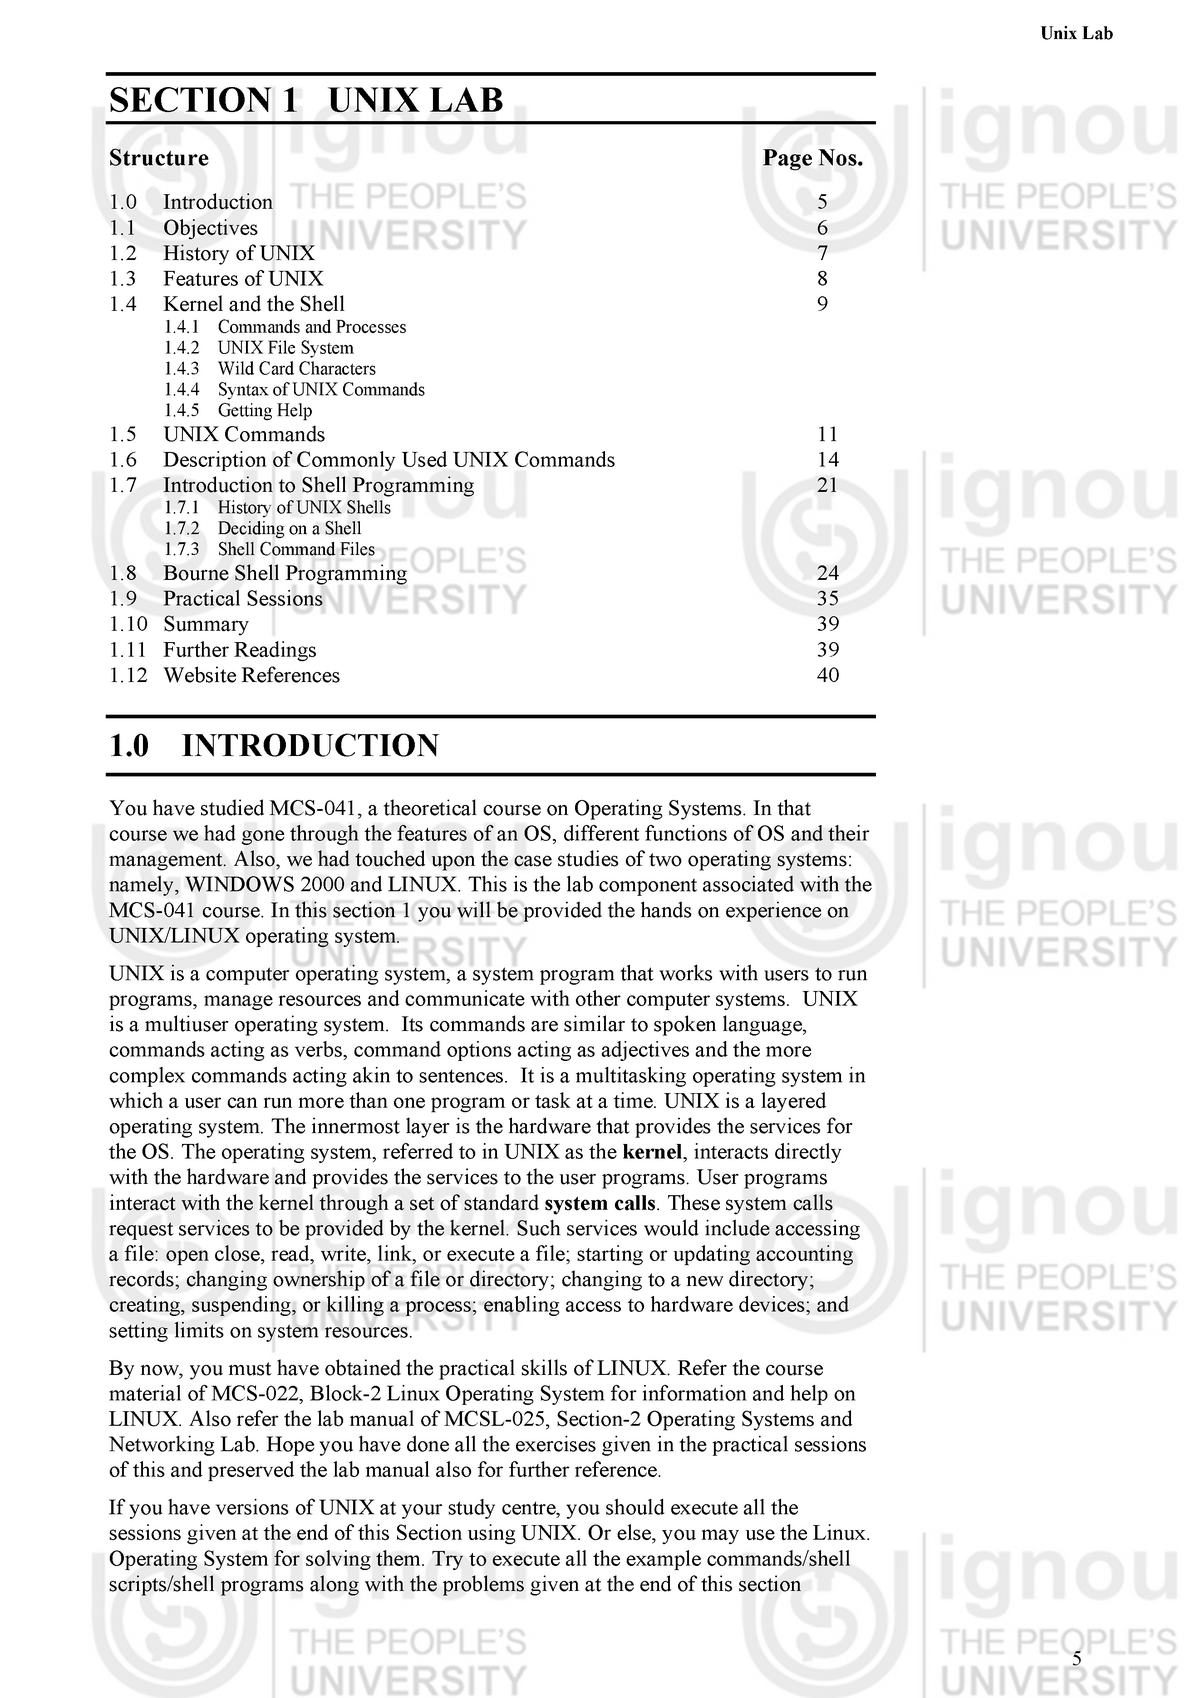 MCSL-045 STUDY MATERIAL - MCSL-045: UNIX and DBMS LAB - StuDocu